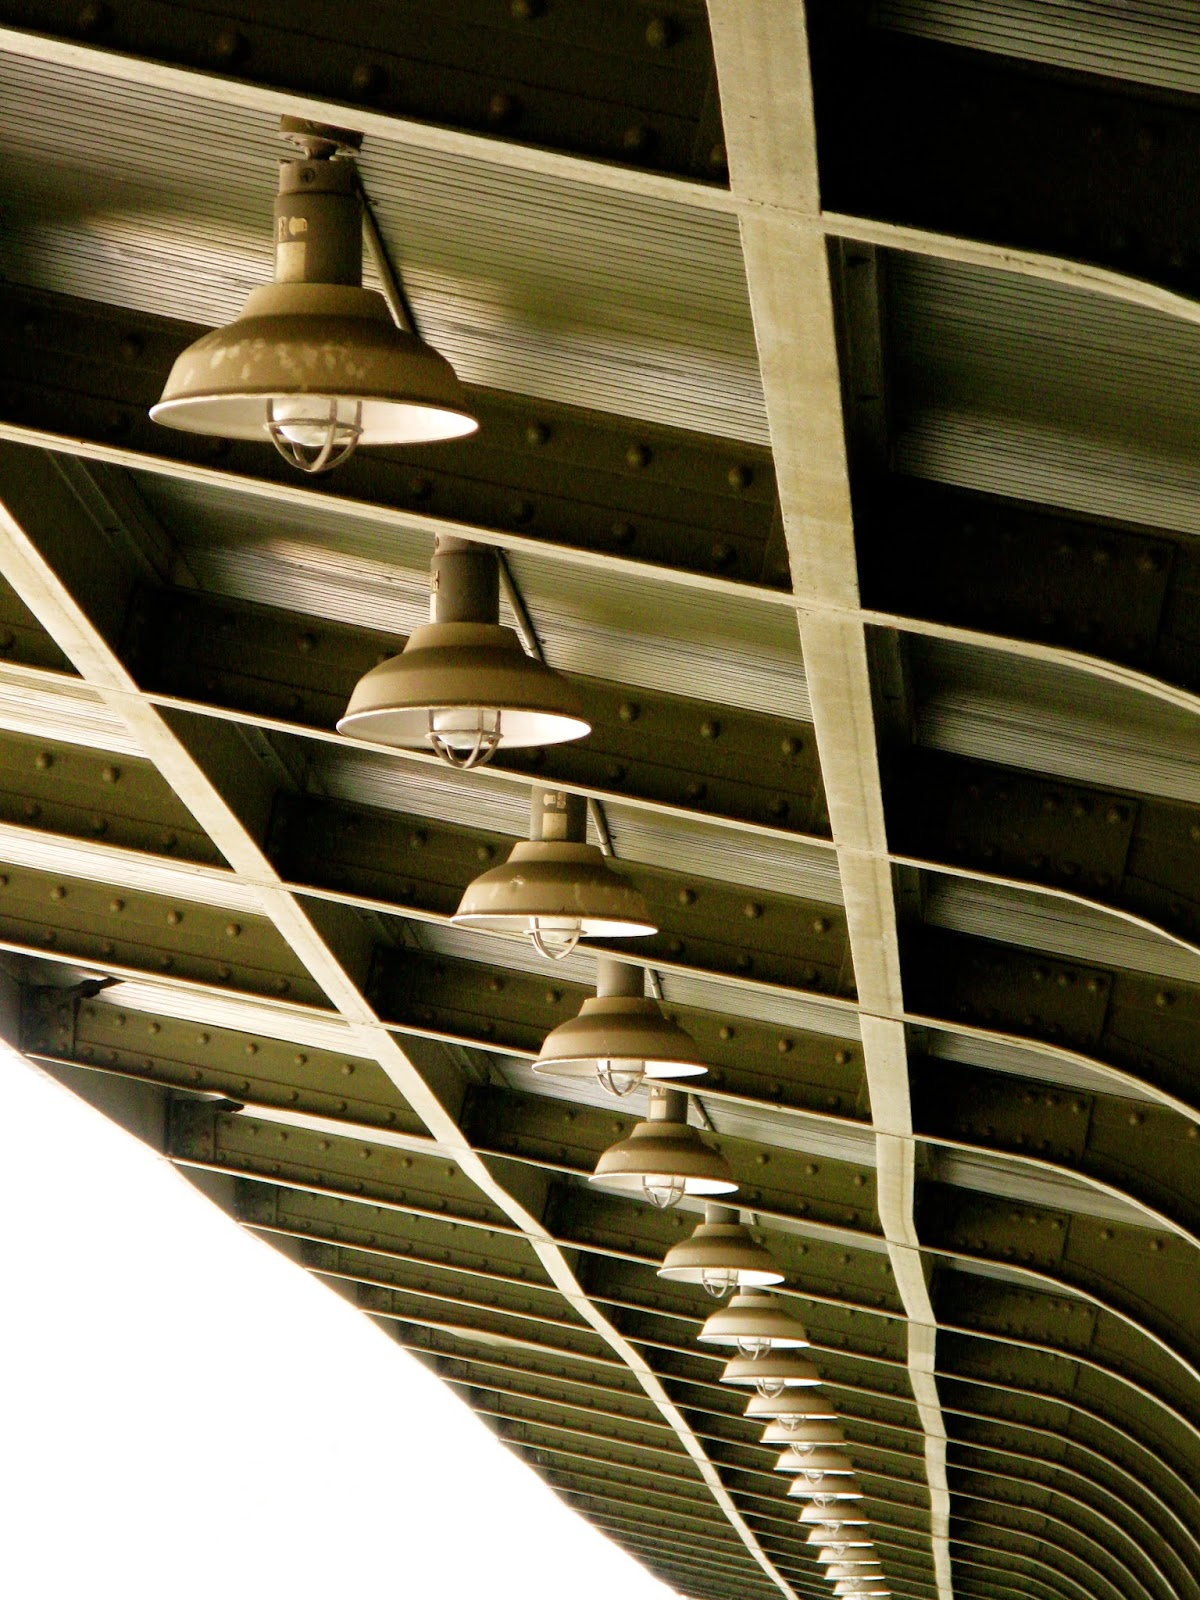 Industrial lights at Utica NY train station